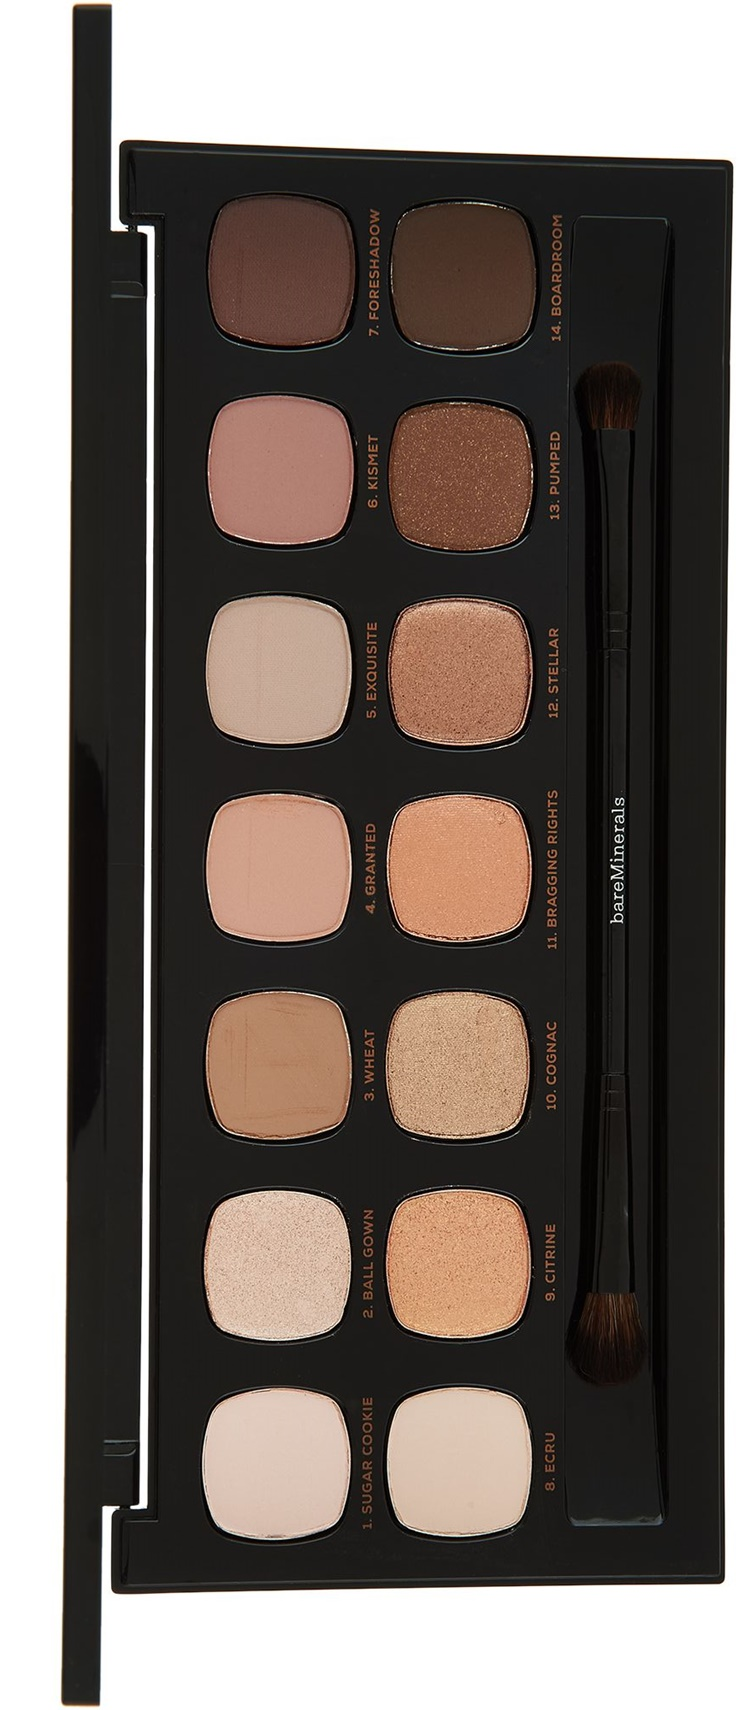 Bare Minerals The Bare Metals Ready Eyeshadow Palette at QVC